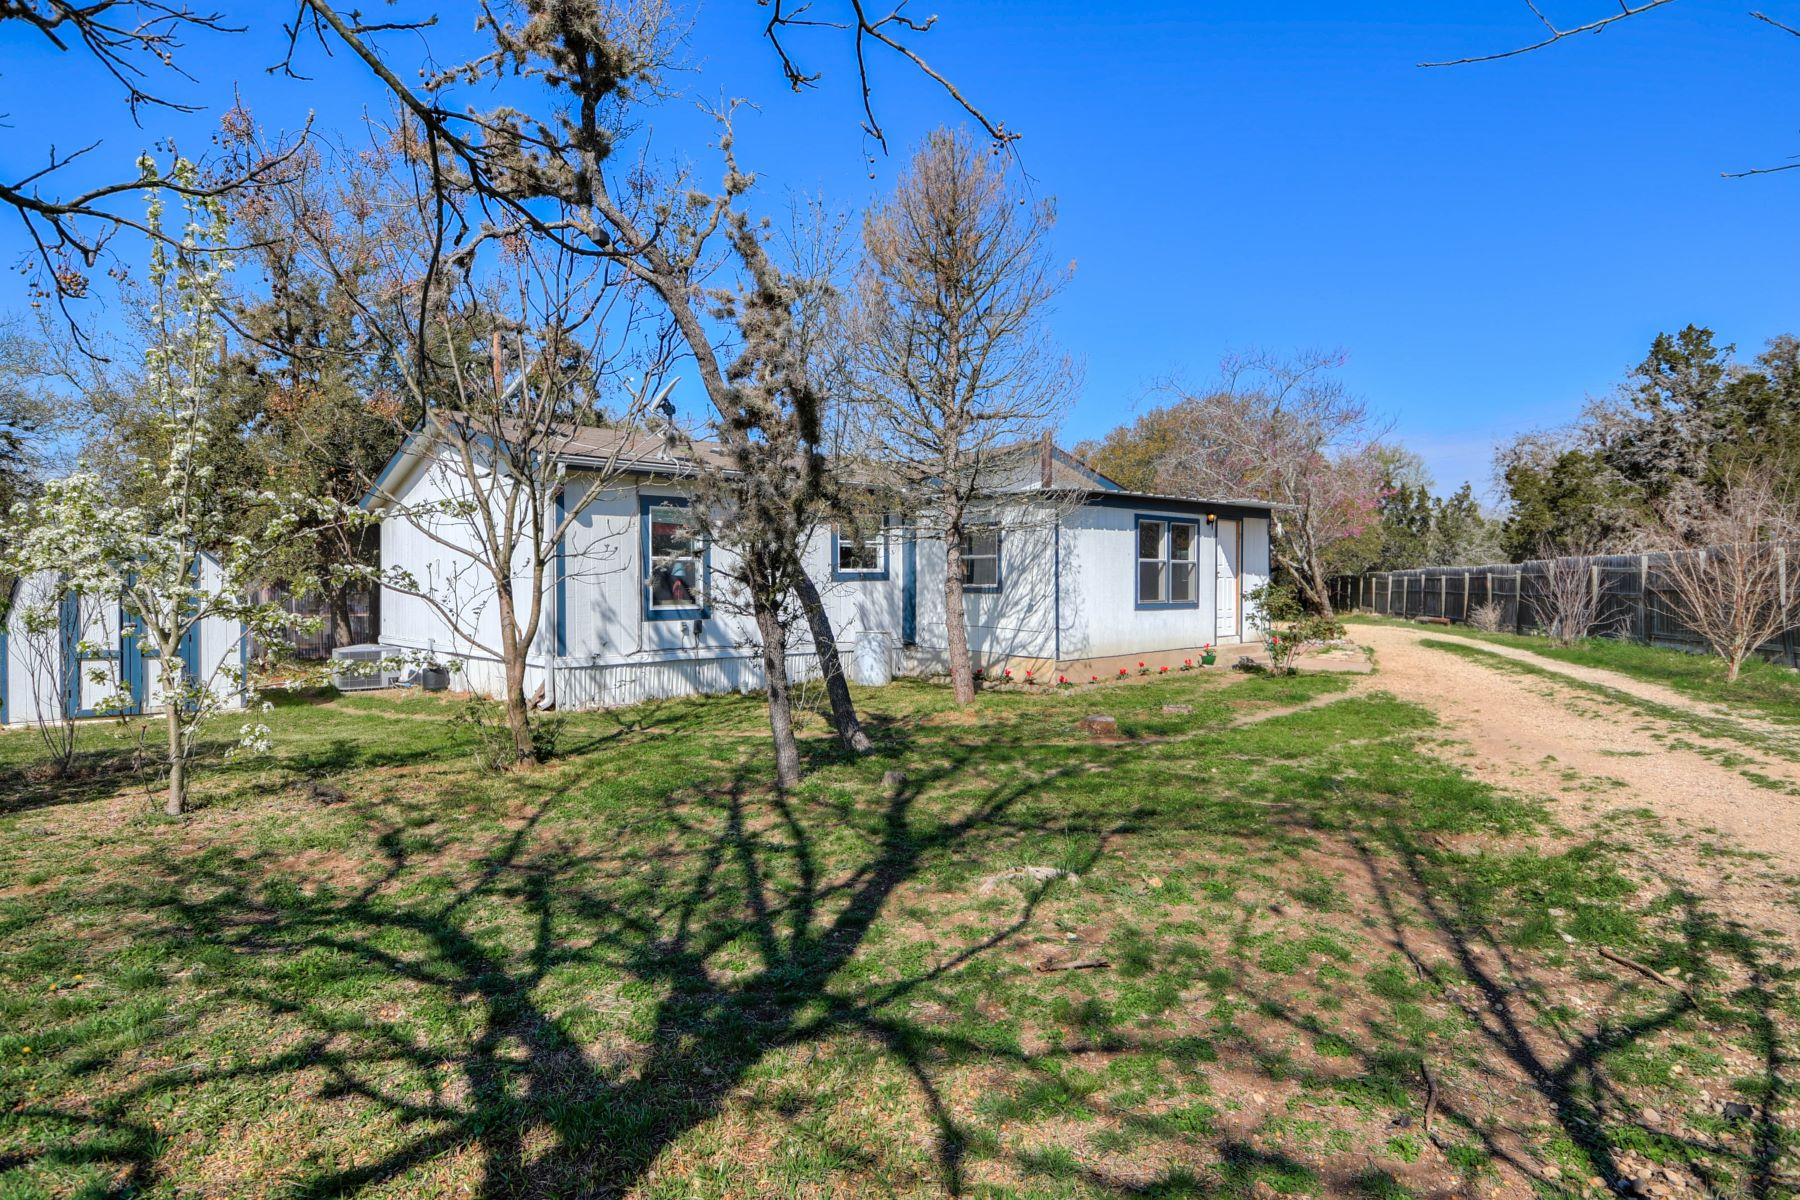 Single Family Home for Sale at 206 Friendship Drive, Comfort, TX 78013 206 Friendship Drive Comfort, Texas 78013 United States